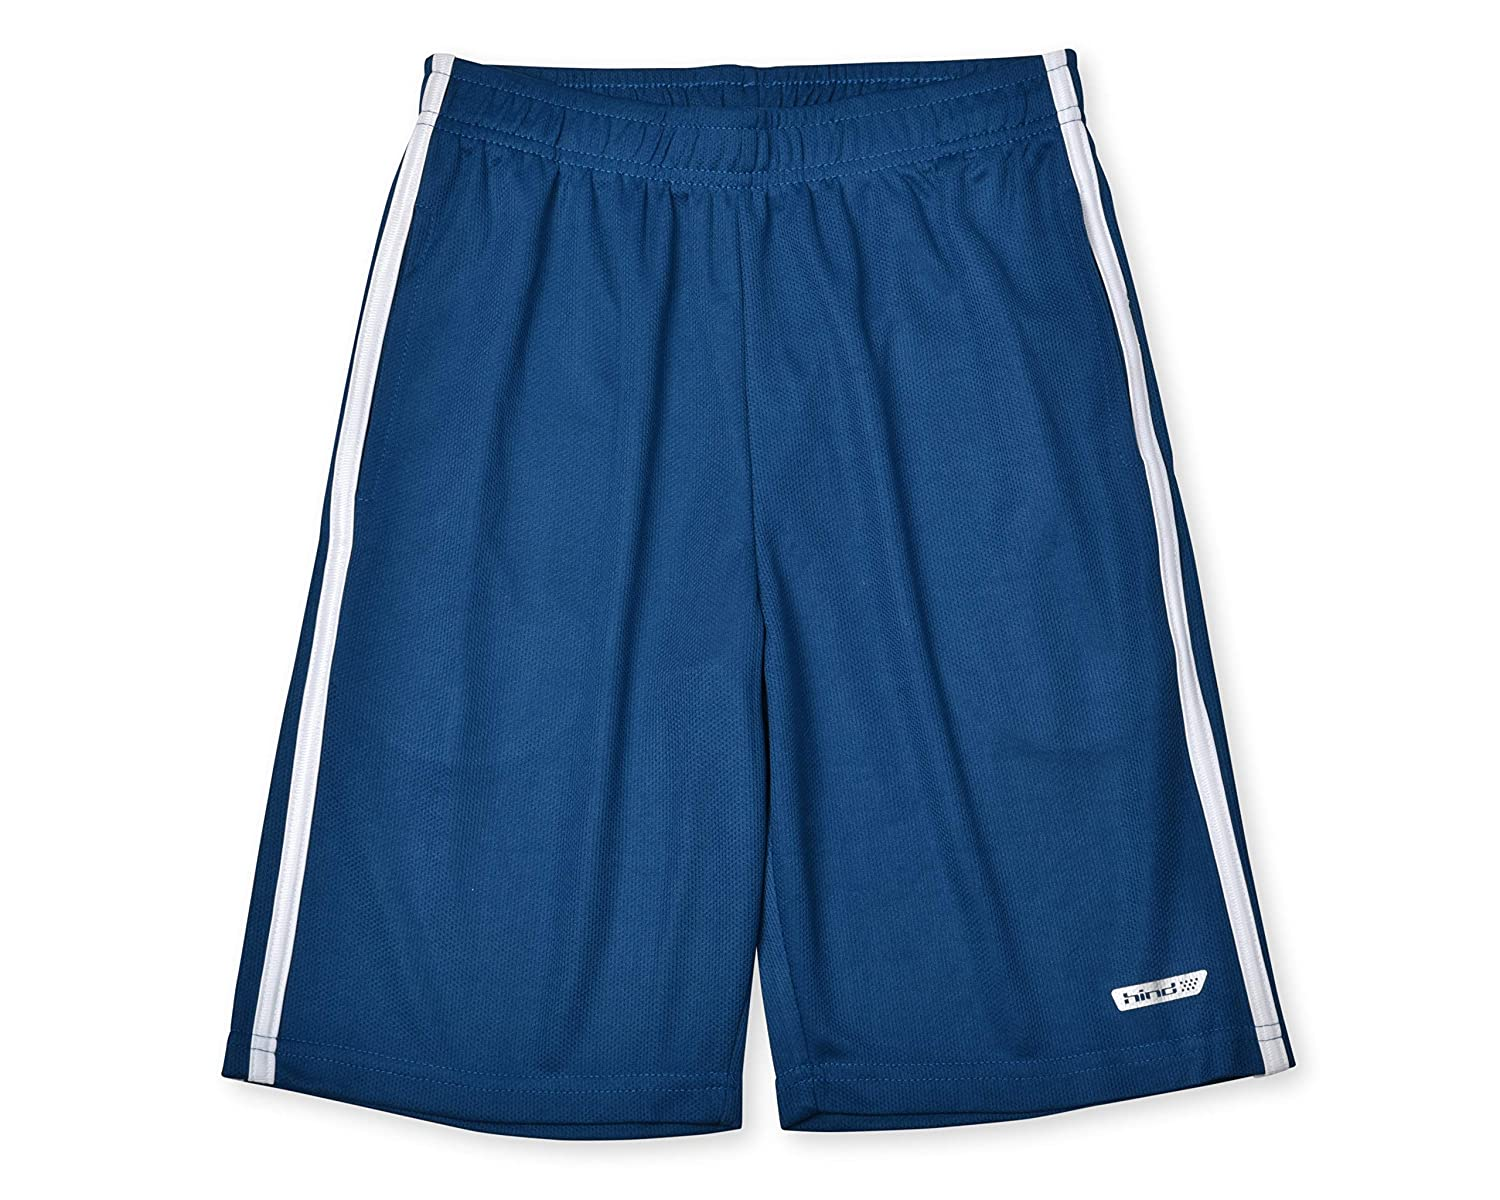 Hind 3-Pack Boys Basketball Shorts Athletic Performance Shorts for Boys